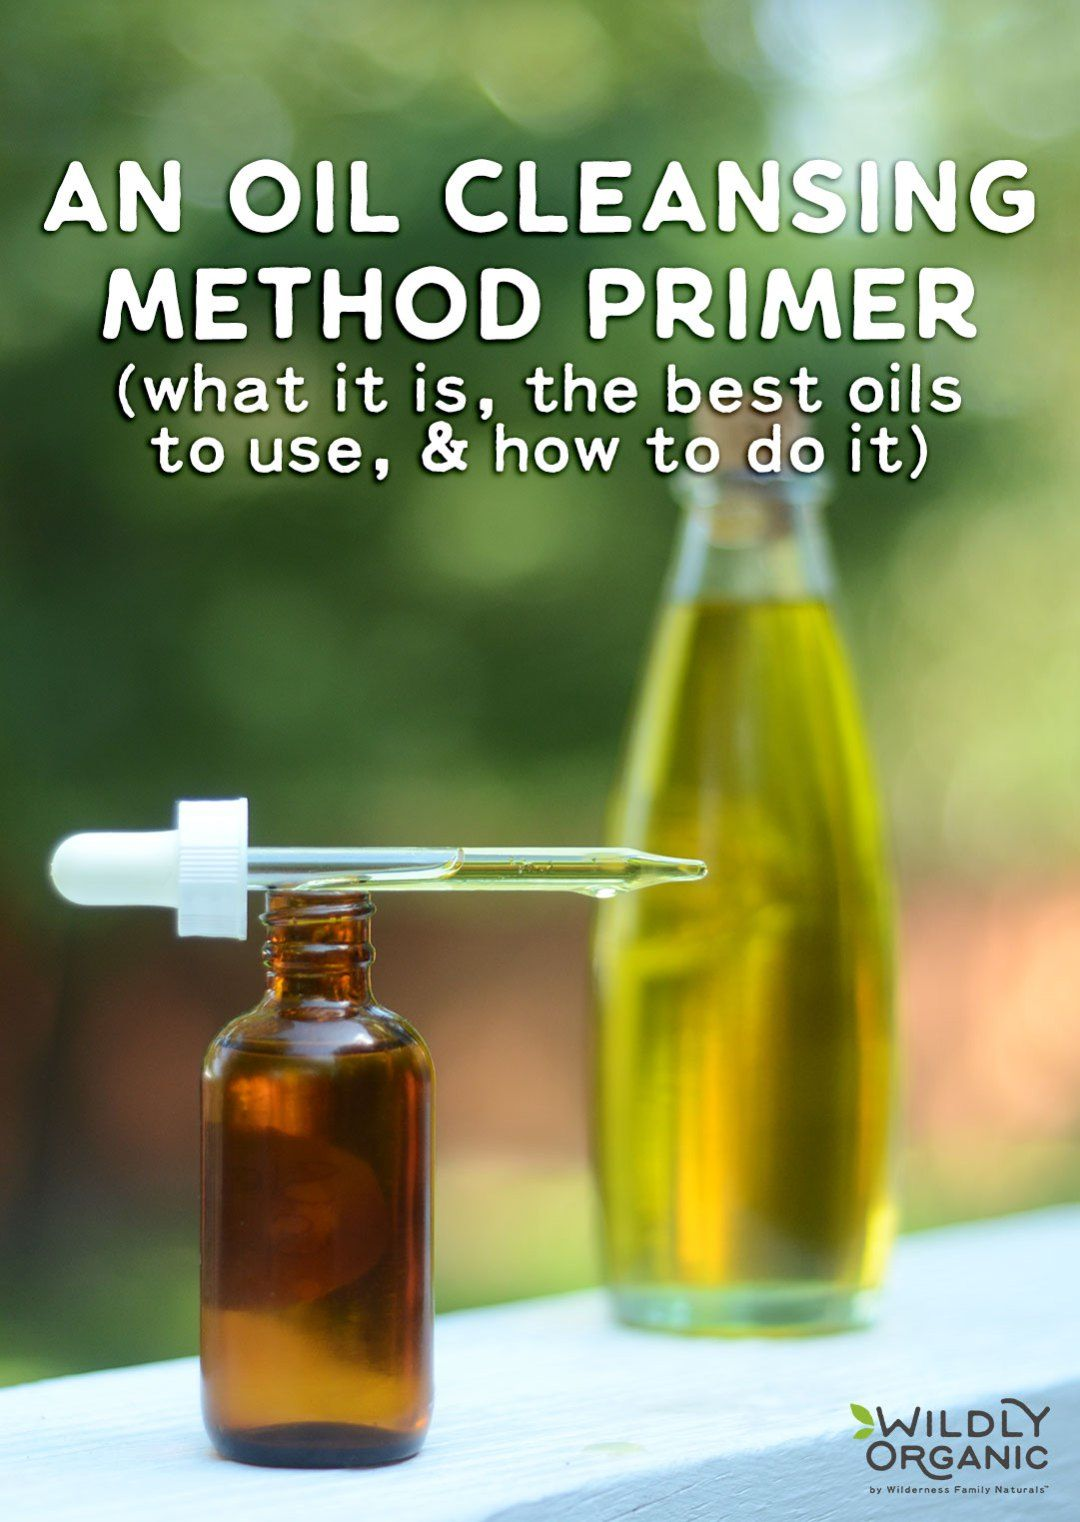 An Oil Cleansing Method Primer (what it is, the best oils